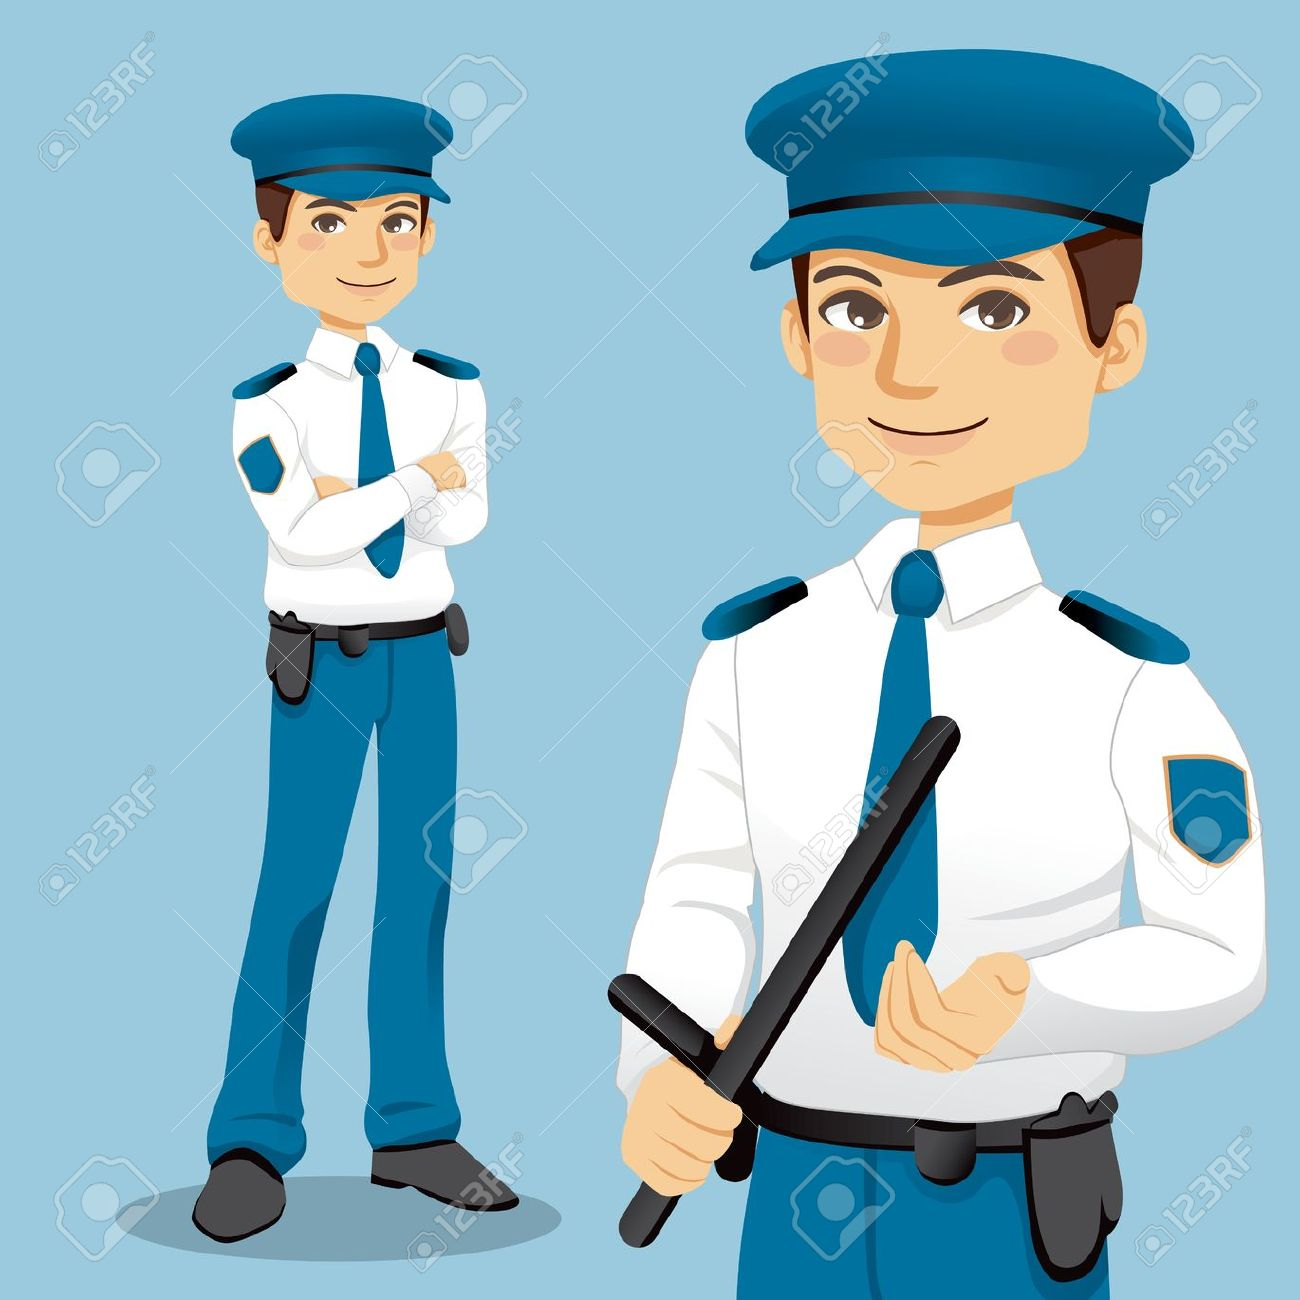 svg free download School security clip art. Guard clipart